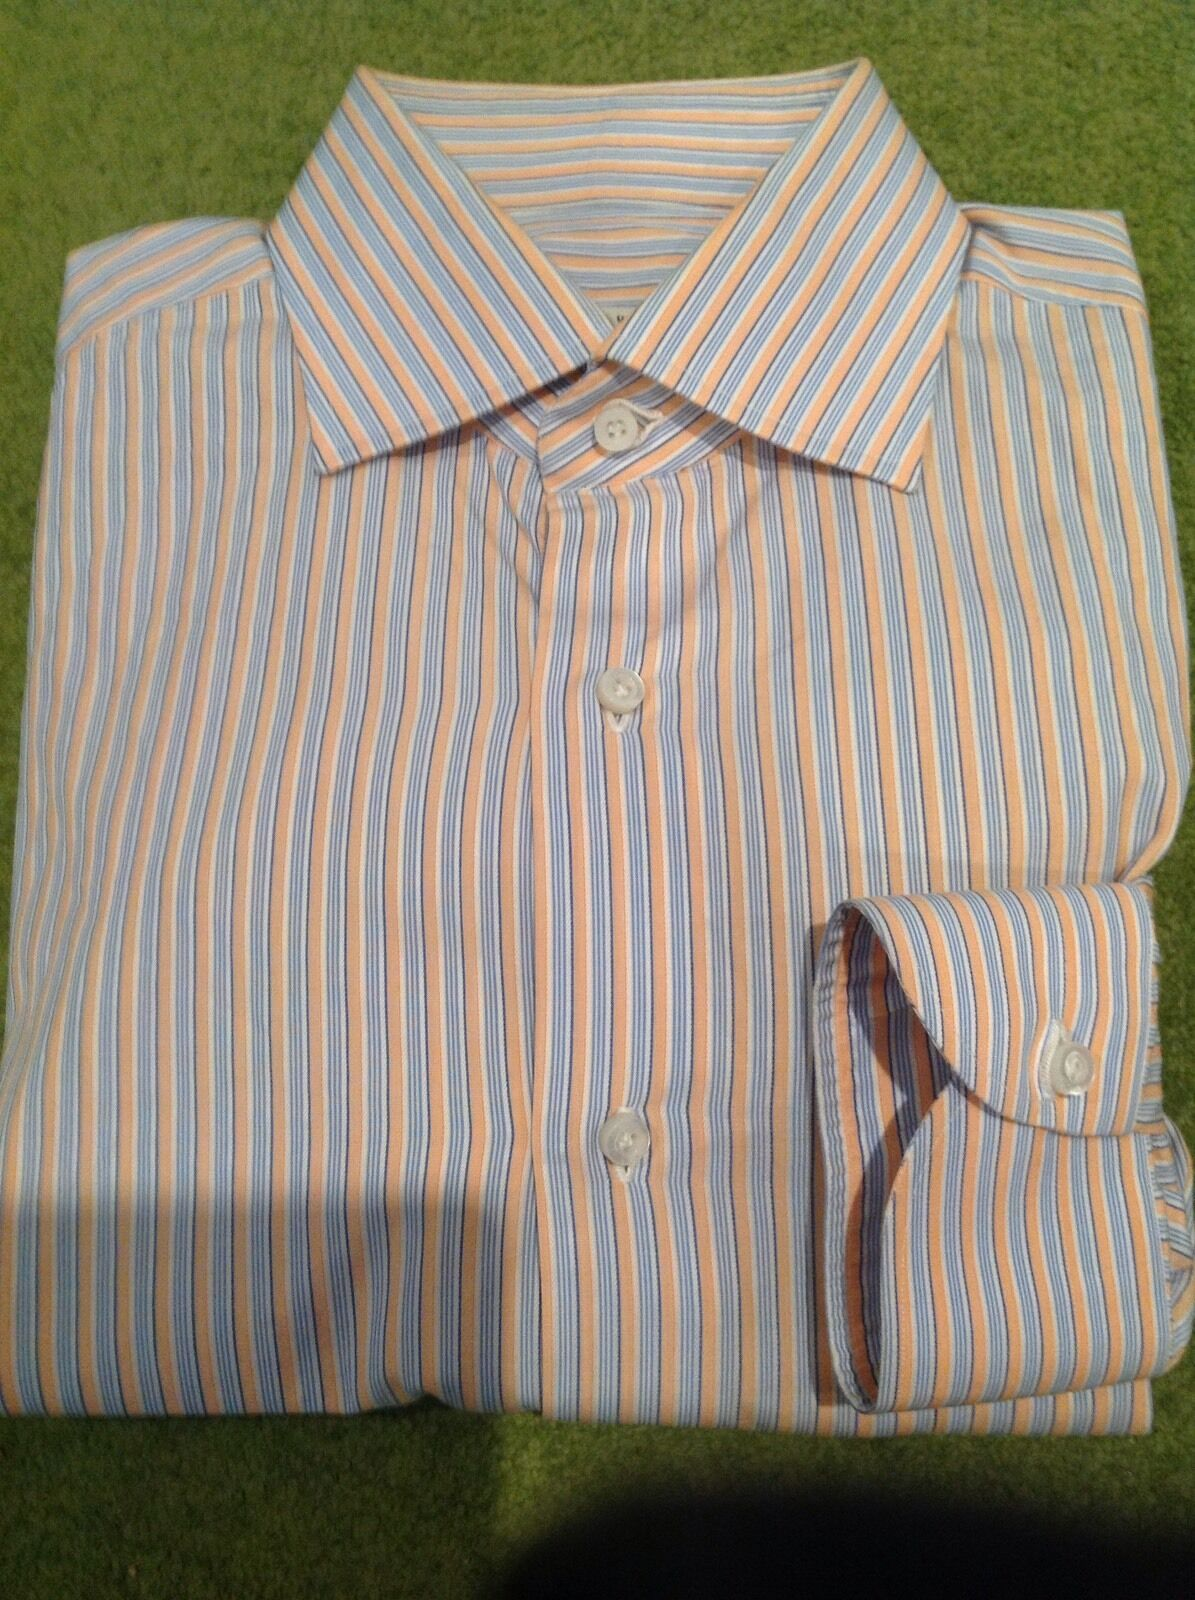 GIANLUCA ISAIA - MUTED Blau Orange  STRIPE baumwolle DRESS hemd - Größe 16